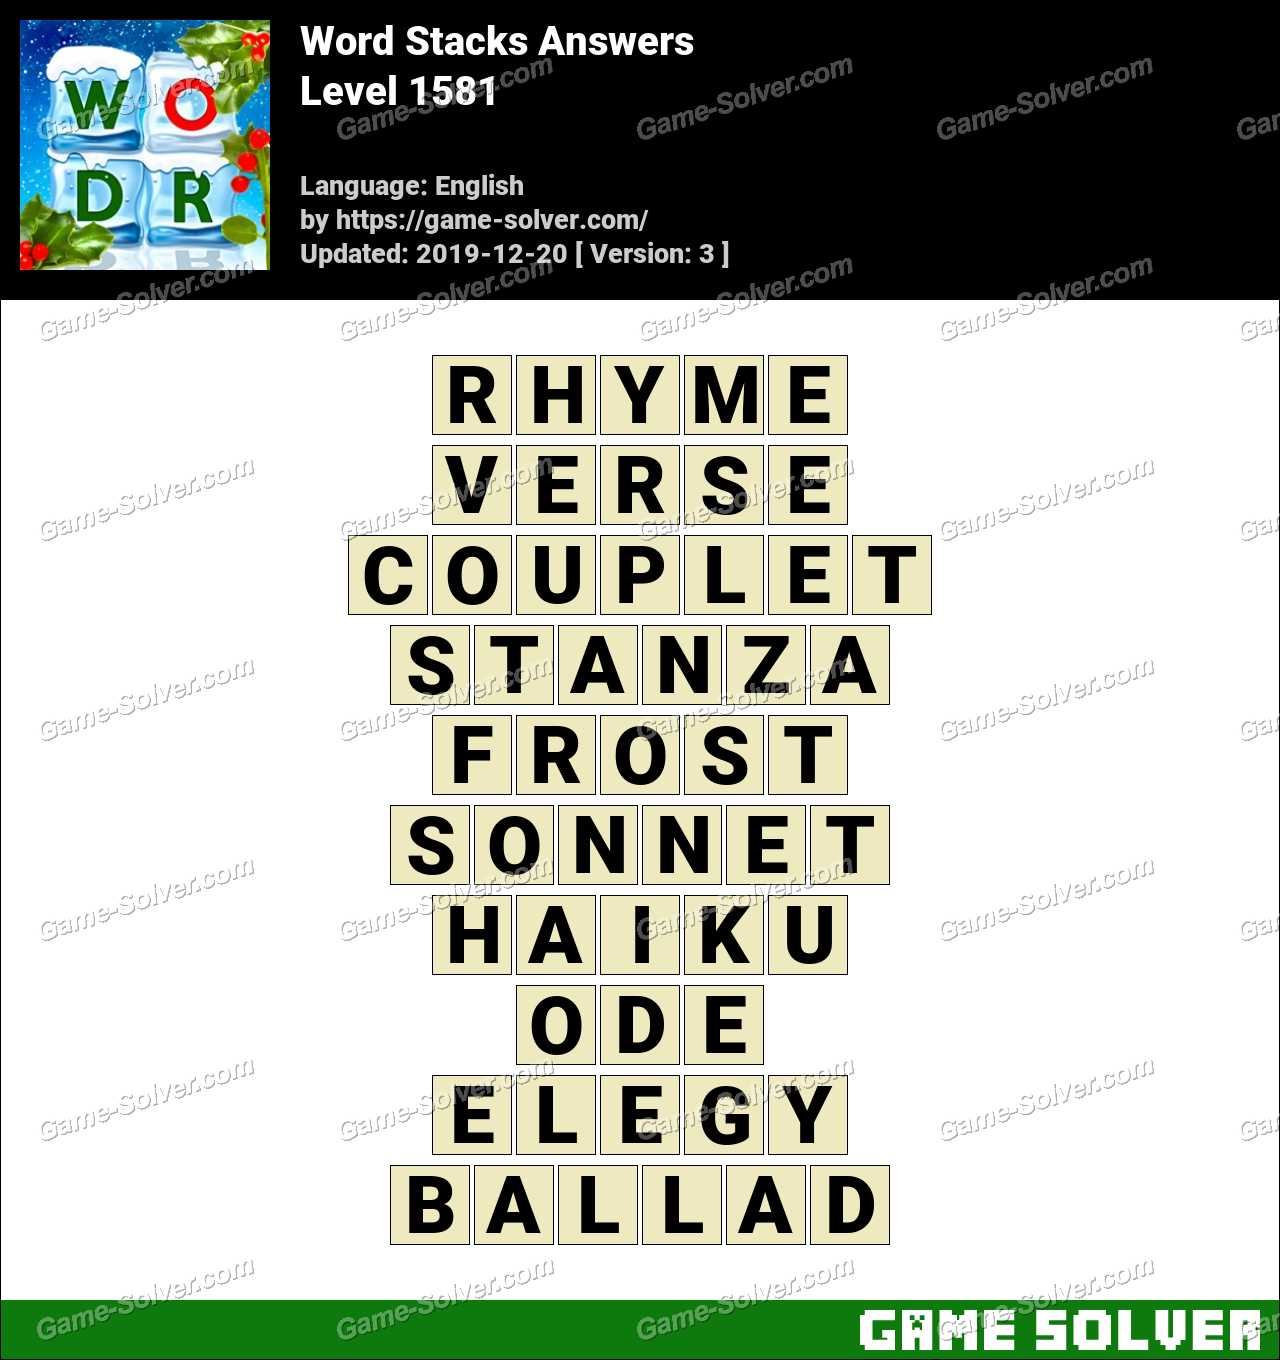 Word Stacks Level 1581 Answers